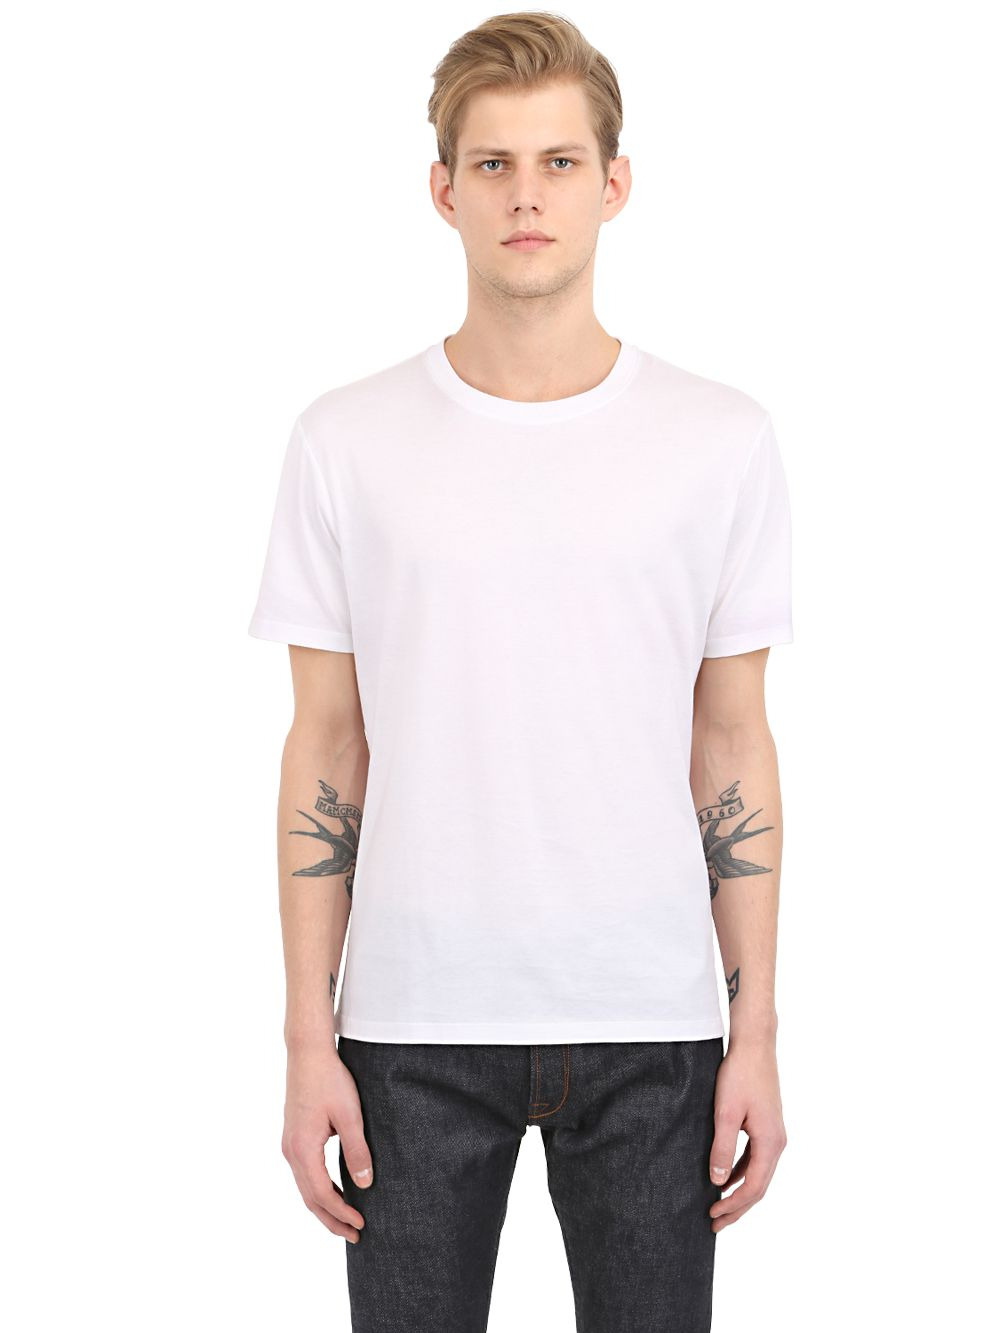 Valentino cotton t shirt in white for men lyst for Mens white cotton t shirts